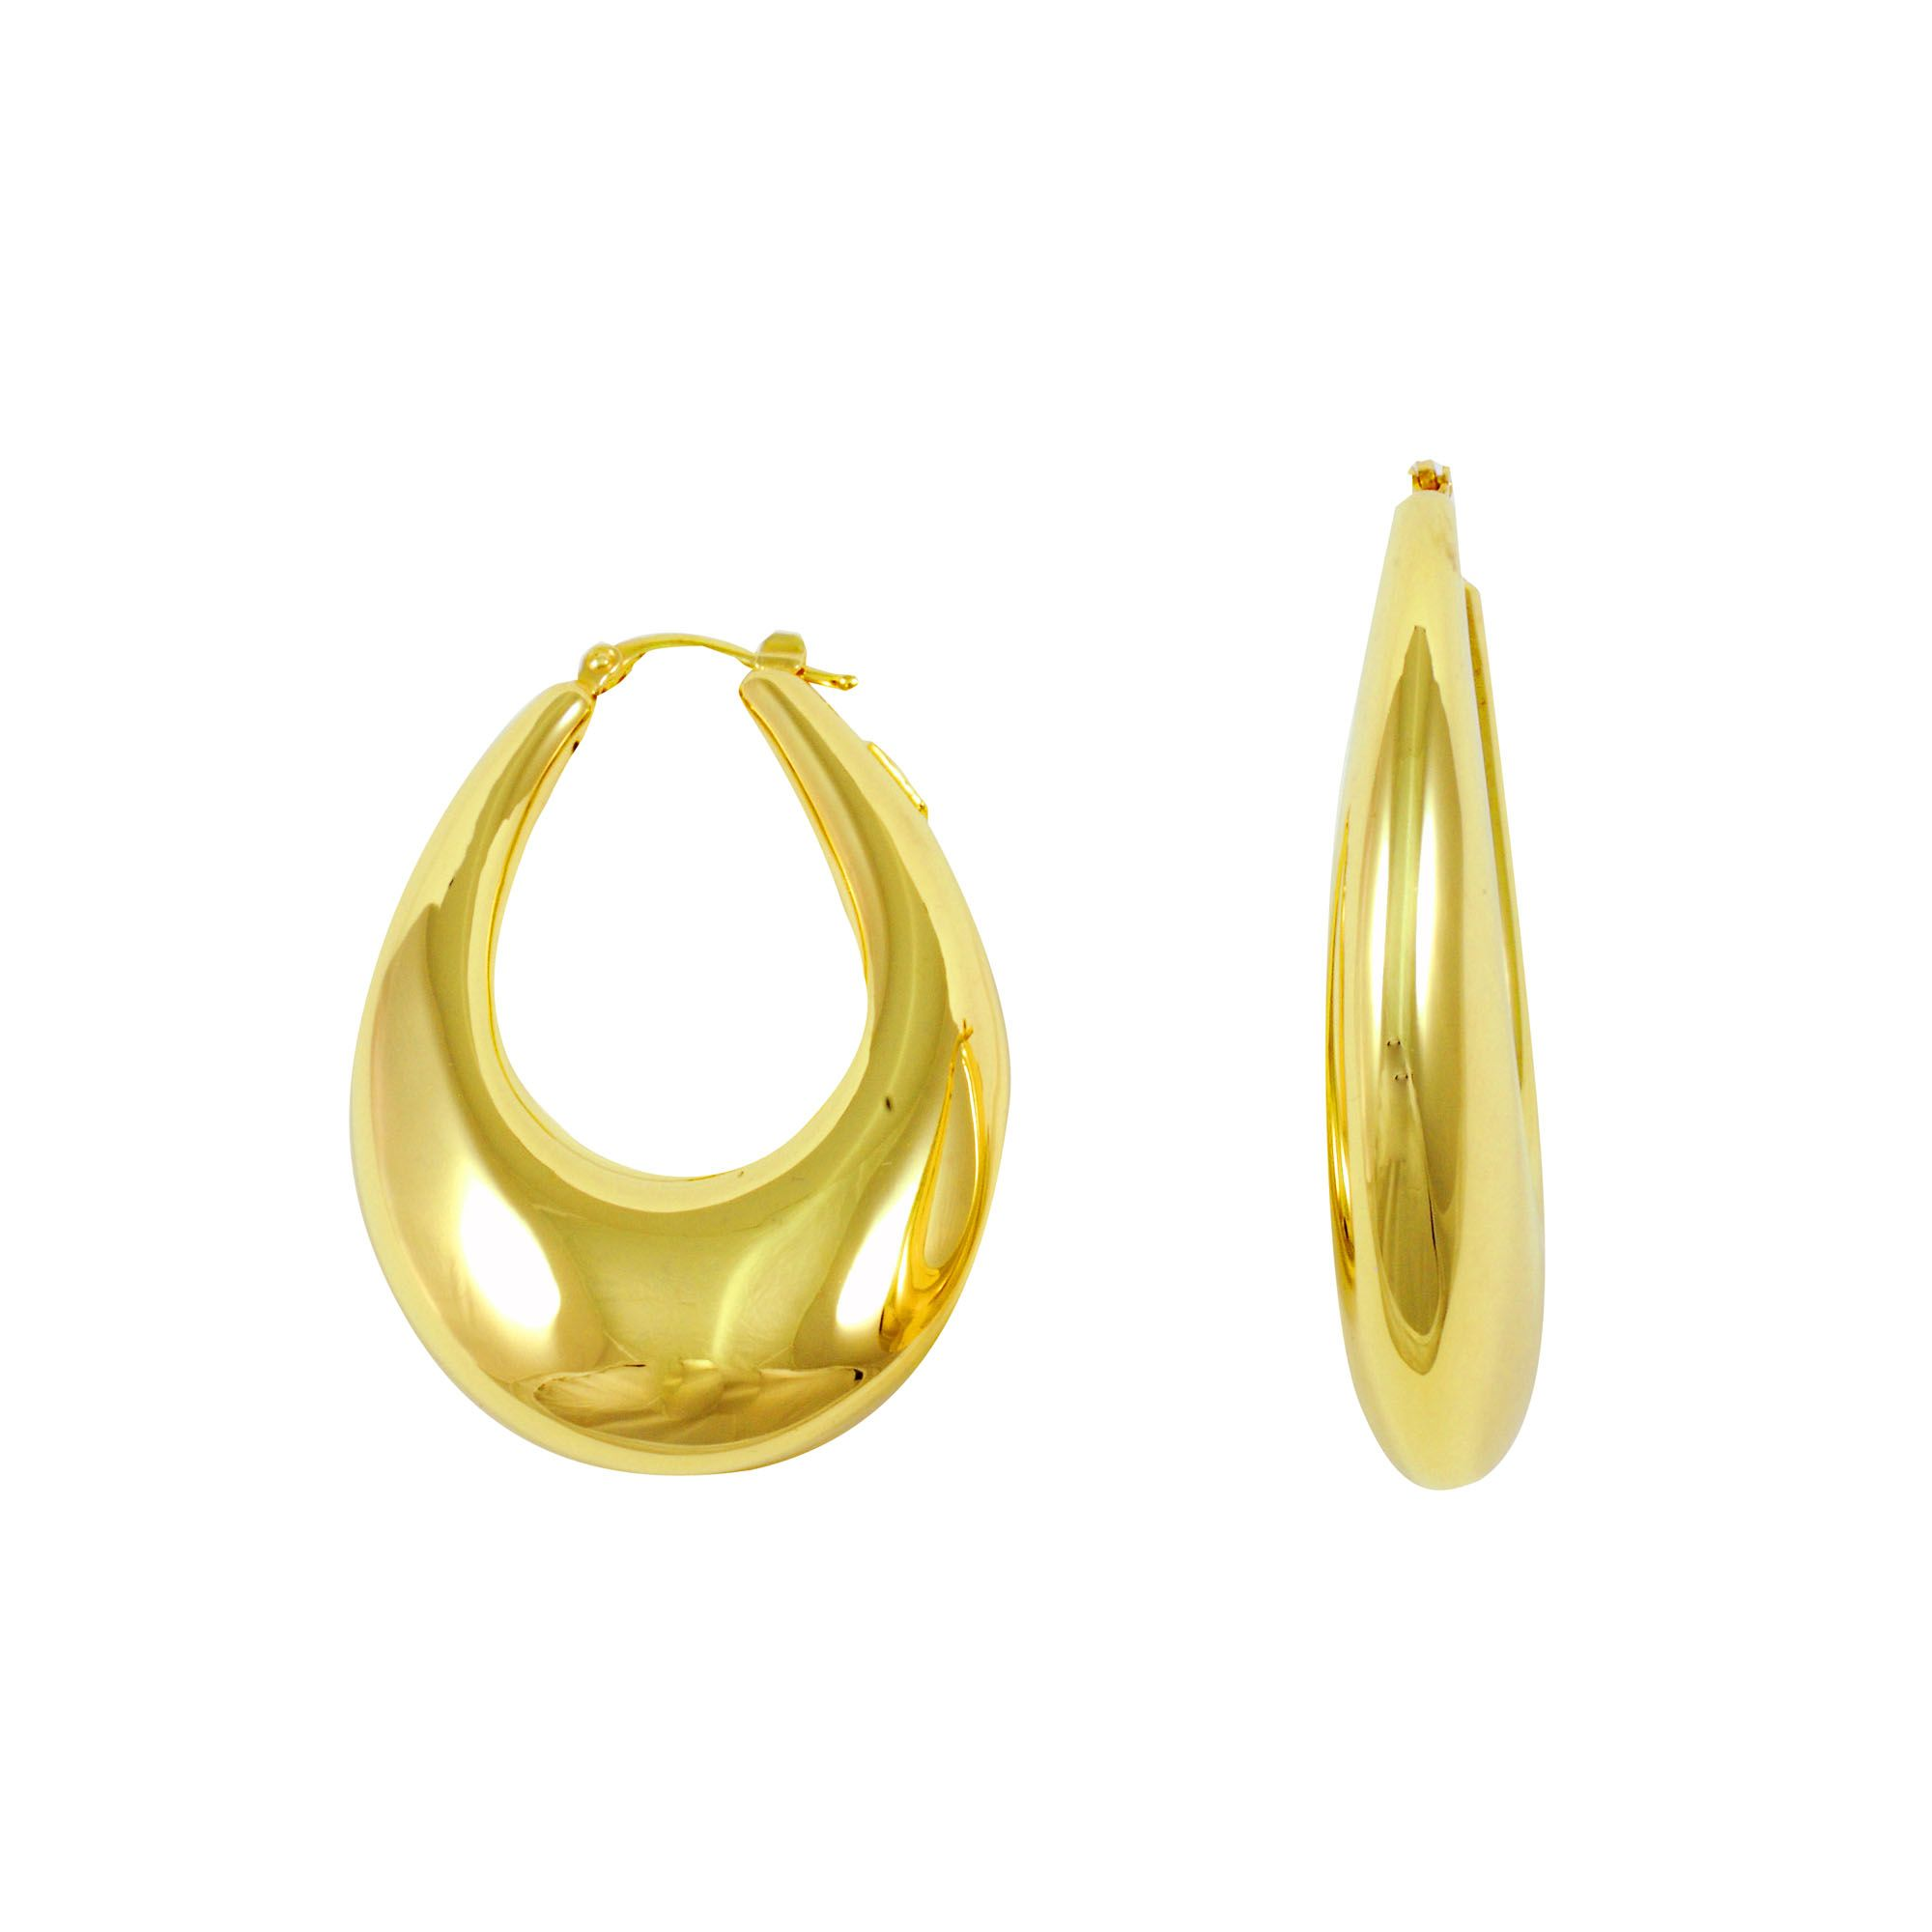 acc67263afeec London Collection 14k Yellow Gold Graduated Oval Hoop Earrings